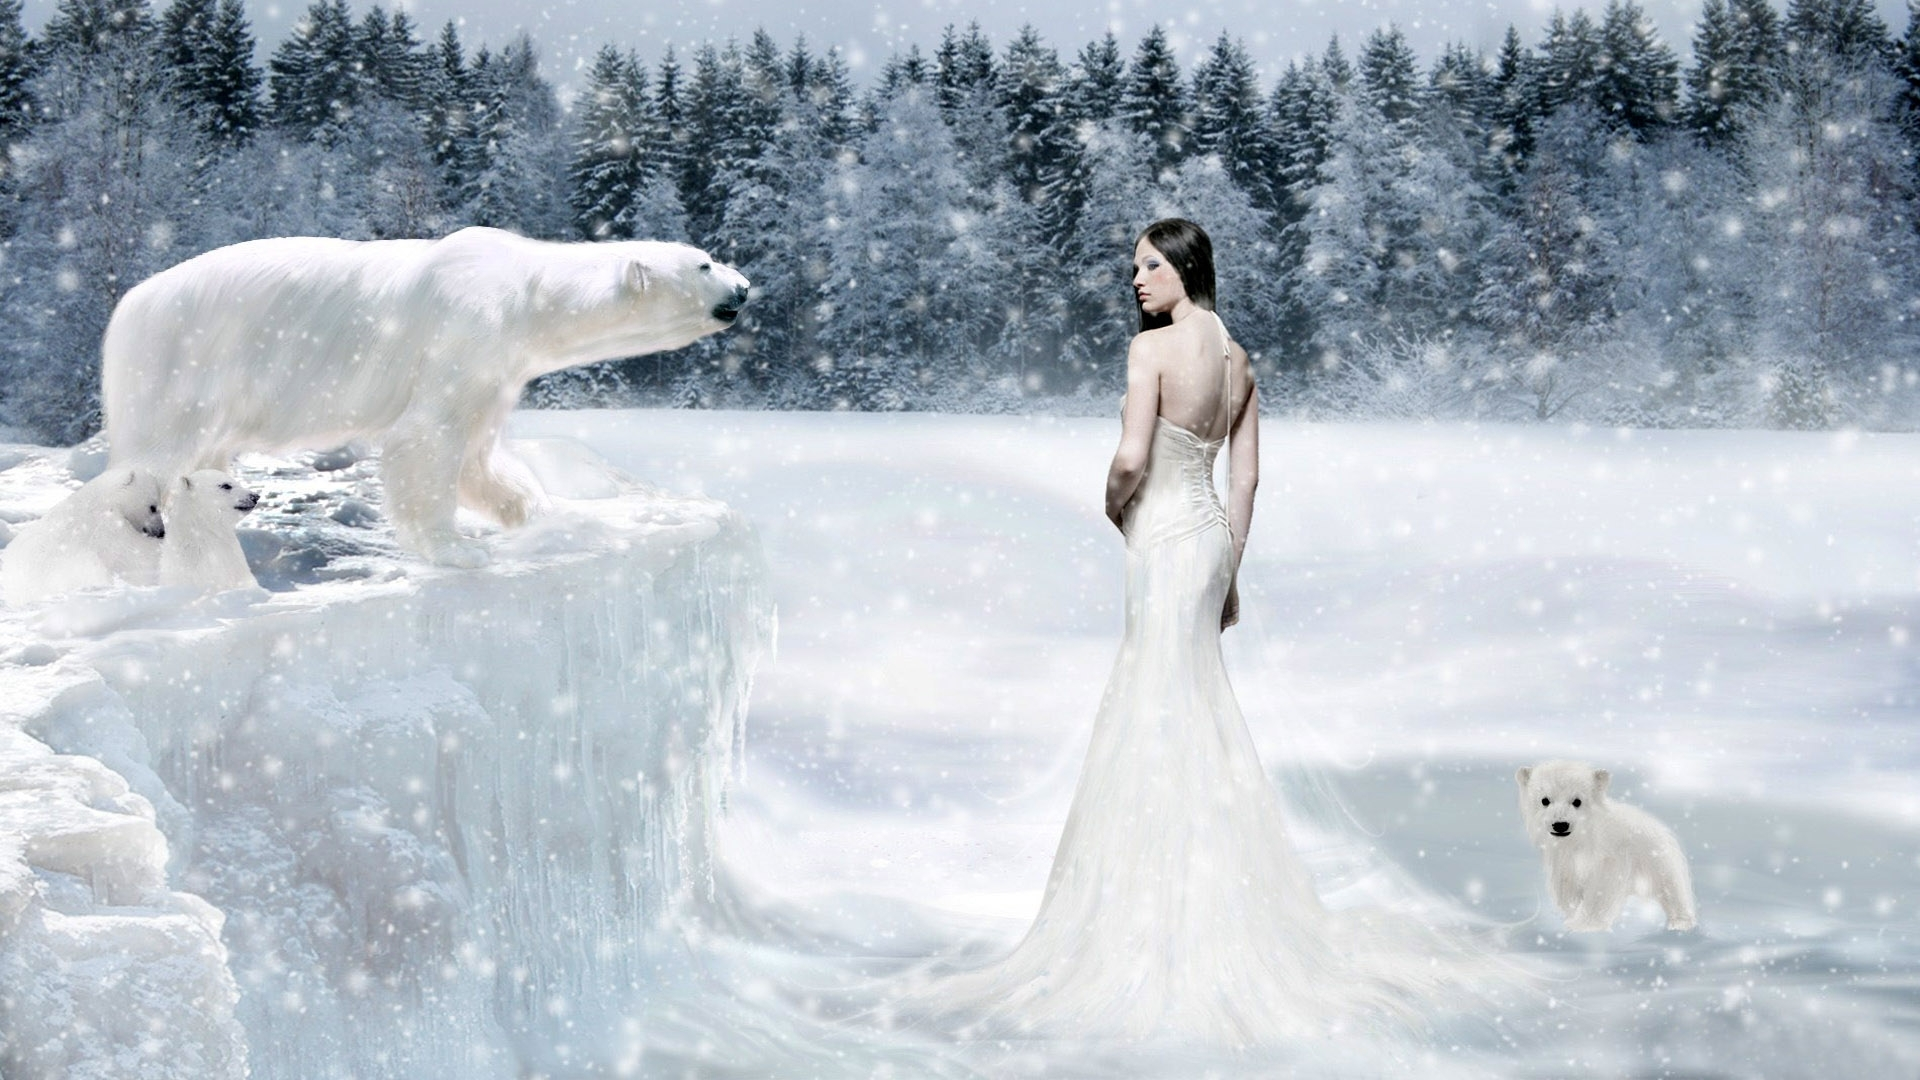 brunettes woman winter snow HD Wallpaper